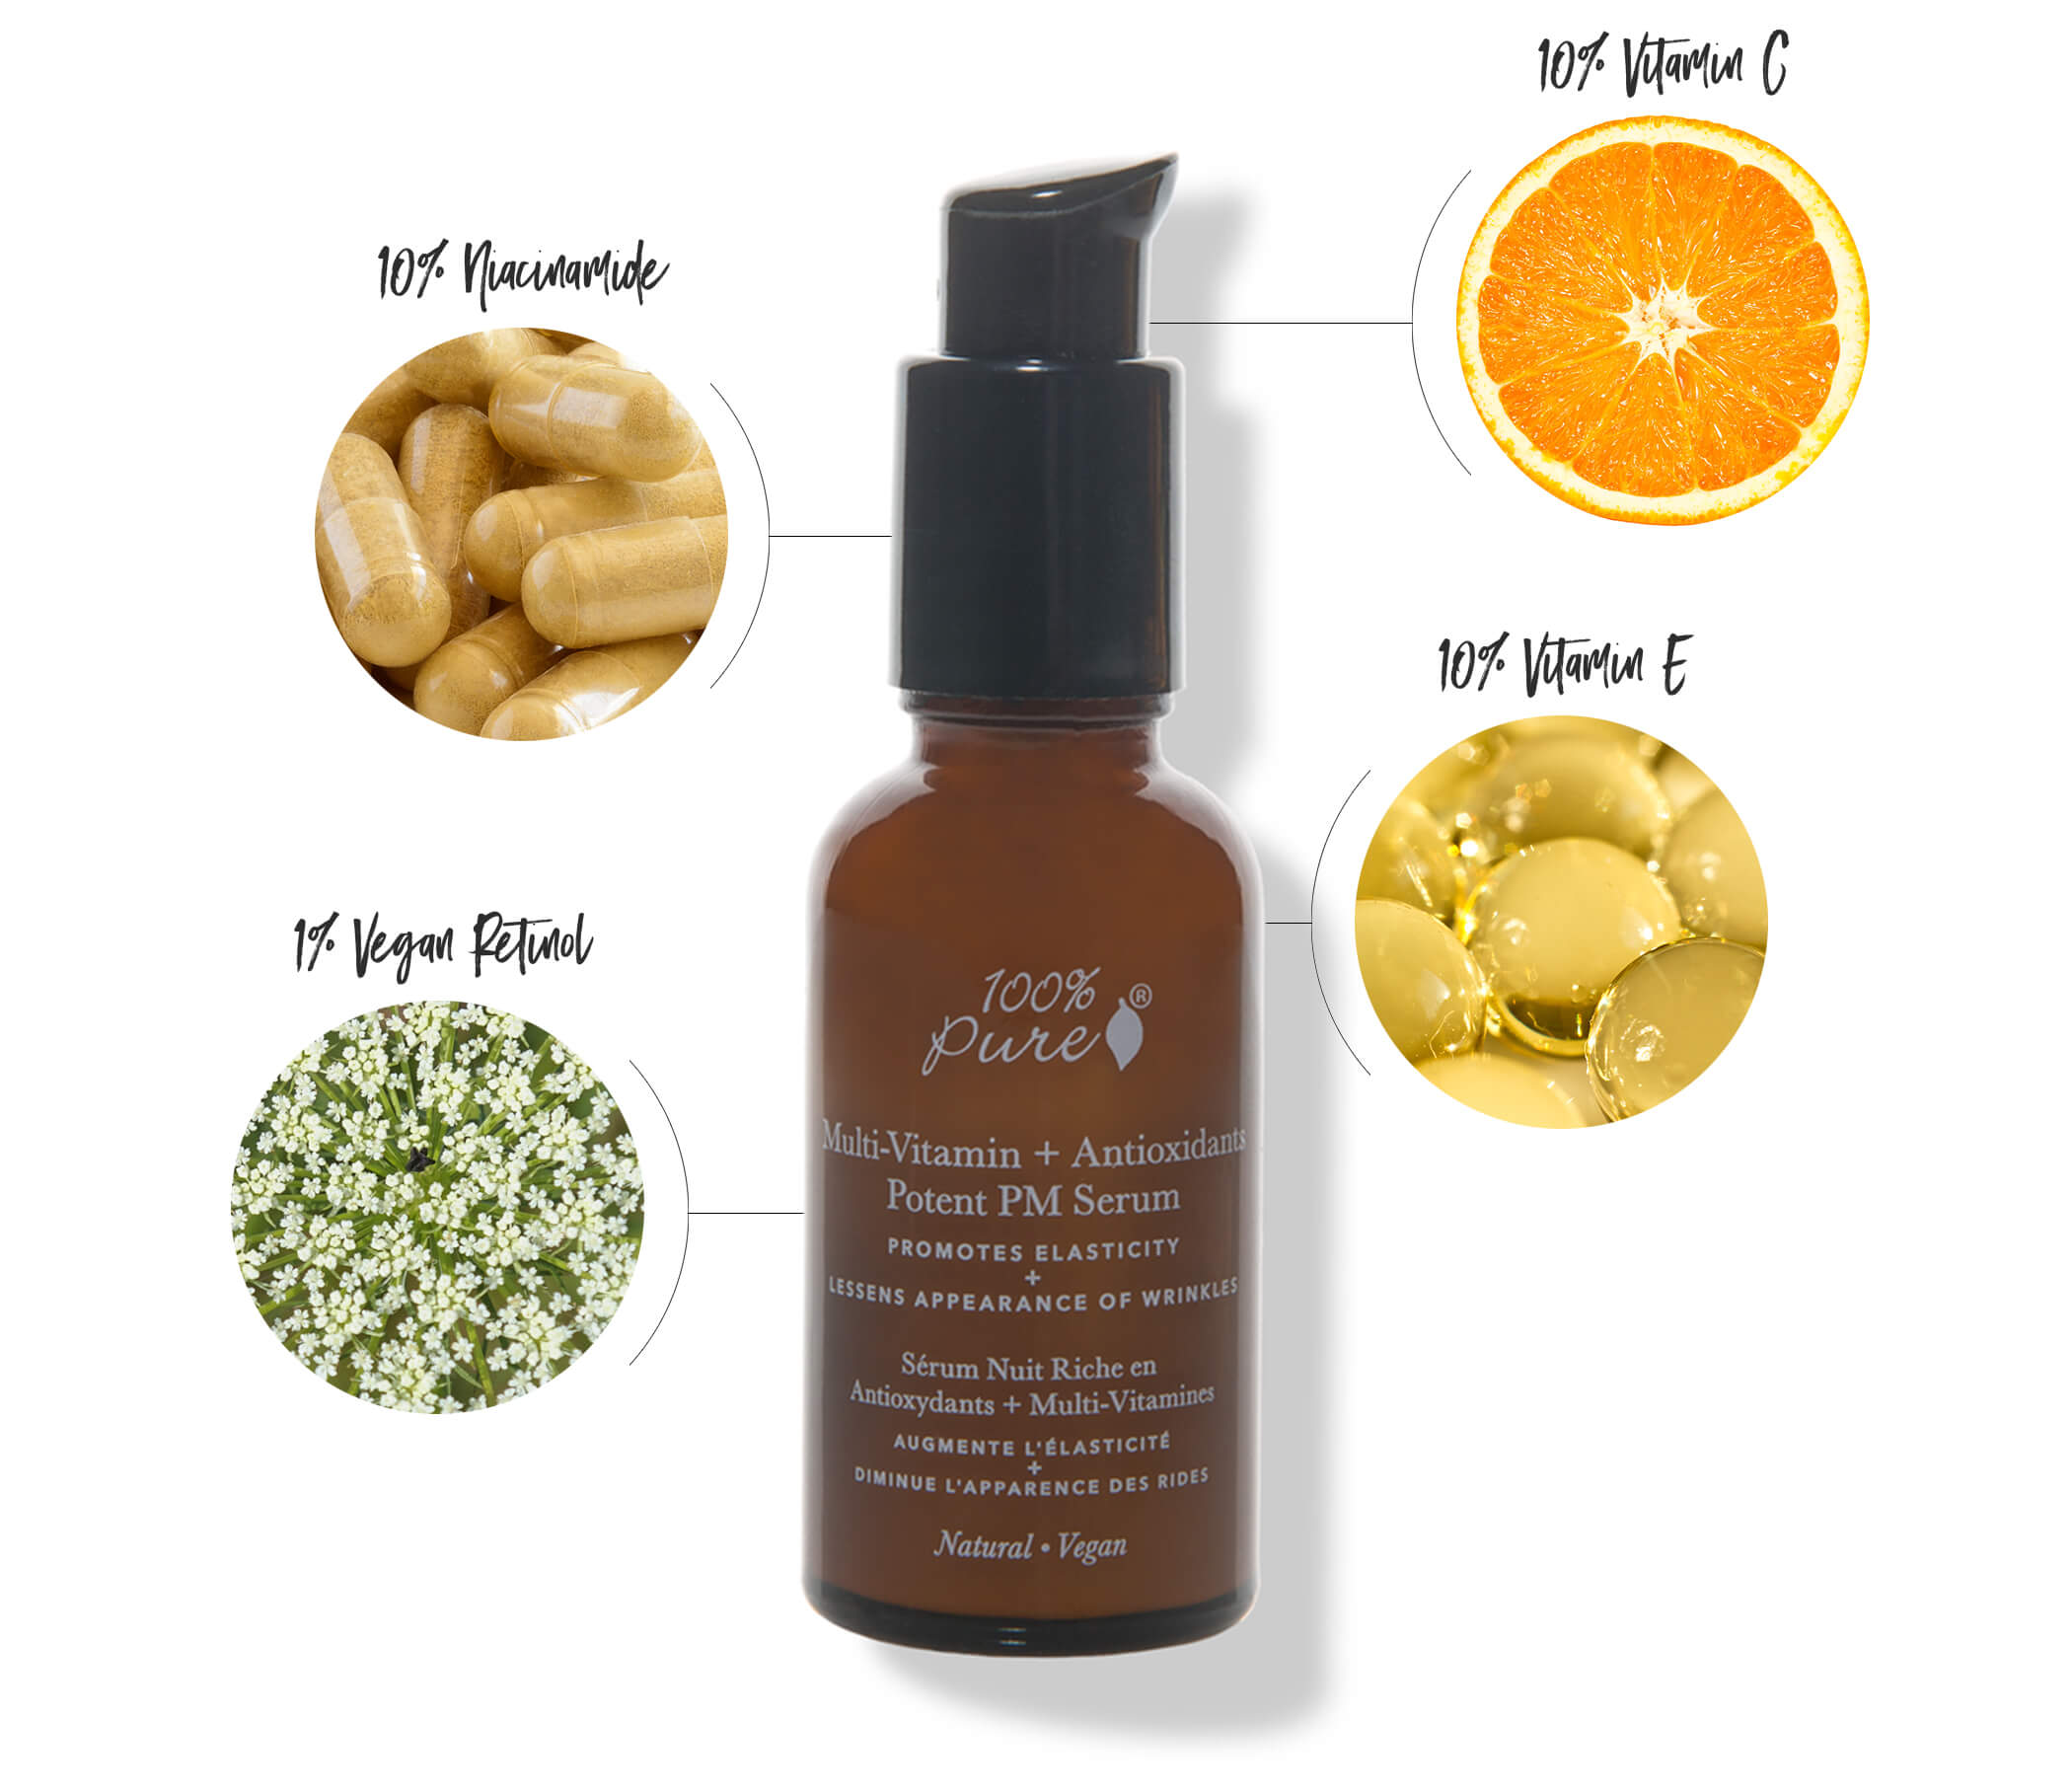 100% PURE Super Multi-Vitamin + Antioxidants Potent PM Serum Ingredients Chart